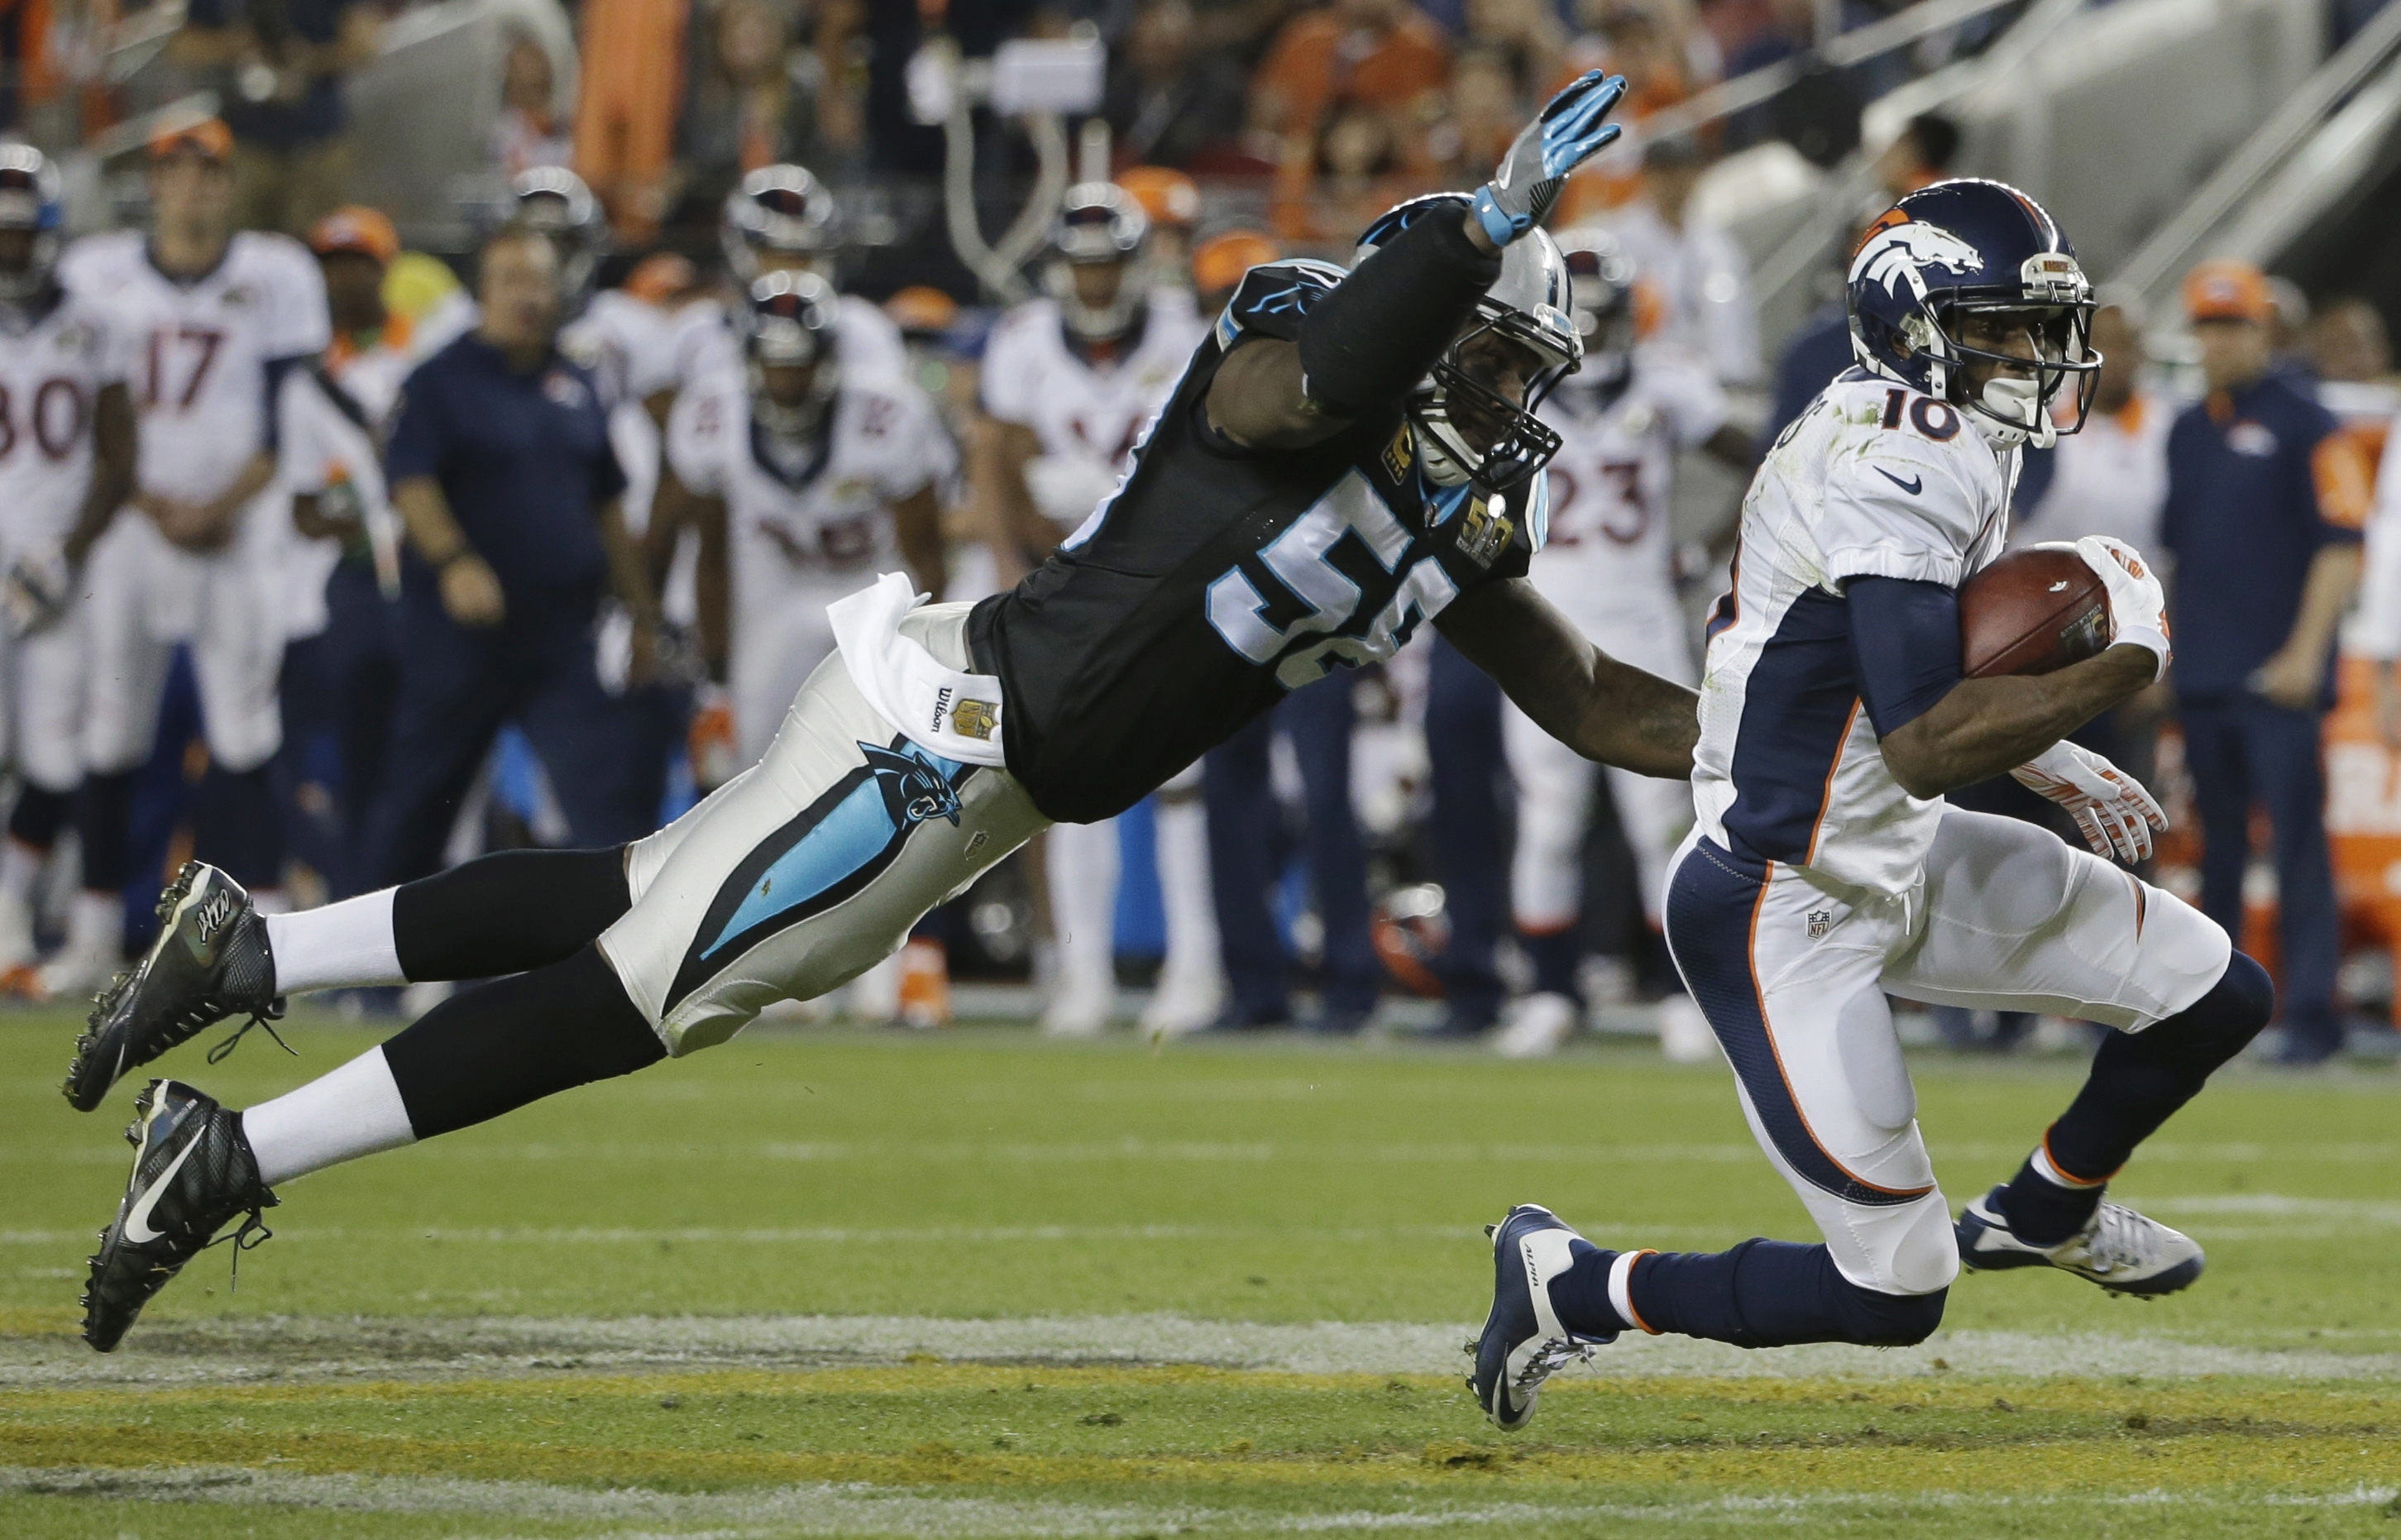 FILE - In this Feb. 7, 2016, file photo, Carolina Panthers' Thomas Davis (58) dives for Denver Broncos' Emmanuel Sanders (10) during the second half of the NFL Super Bowl 50 football game, in Santa Clara, Calif. Panthers linebacker Thomas Davis, entering